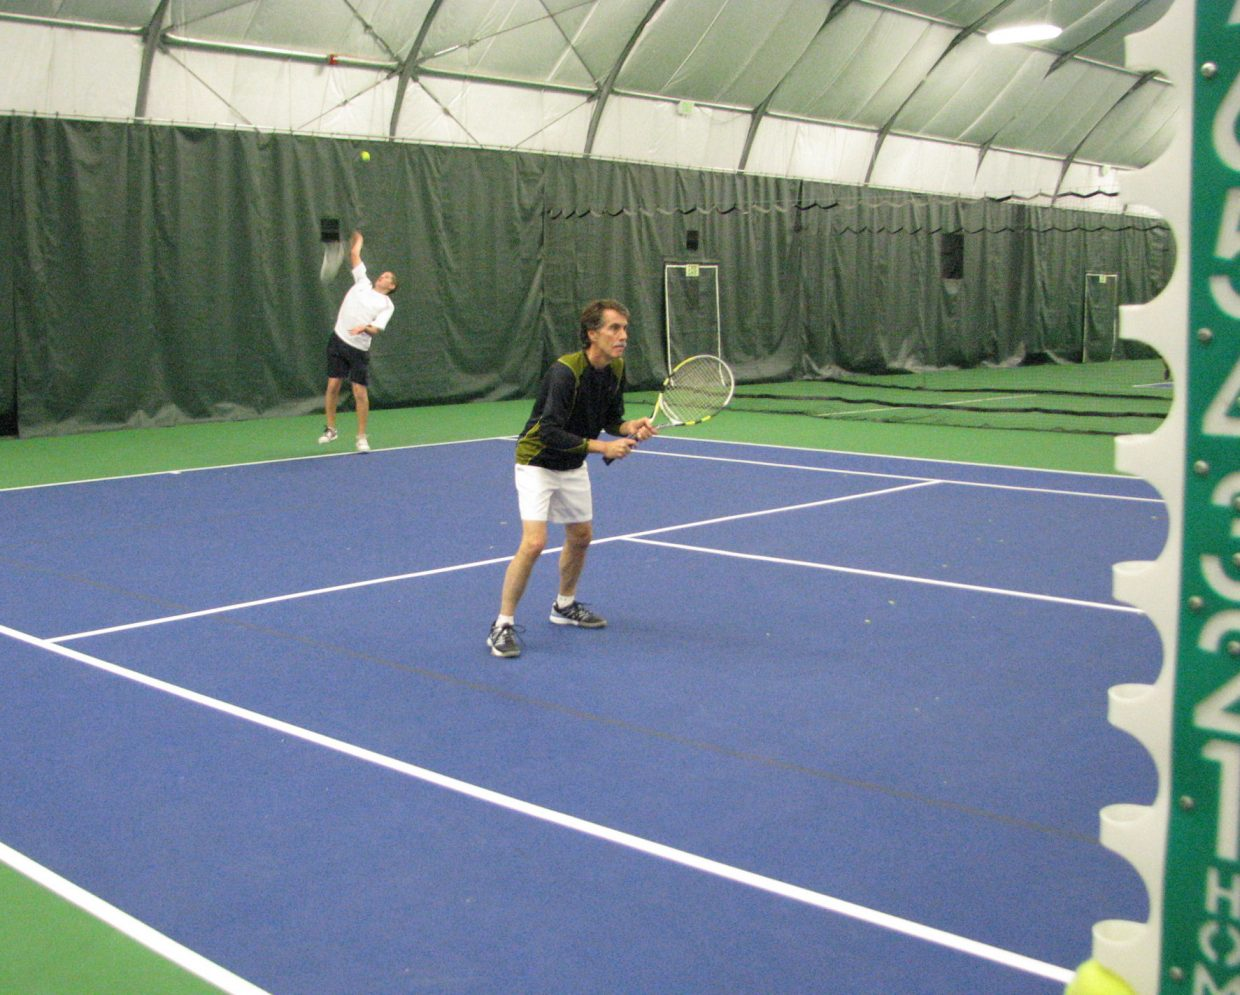 Dave Schaller and Gabri Erspamer compete at the Steamboat City Singles and Doubles Championships on Saturday at the Tennis Center at Steamboat Springs.